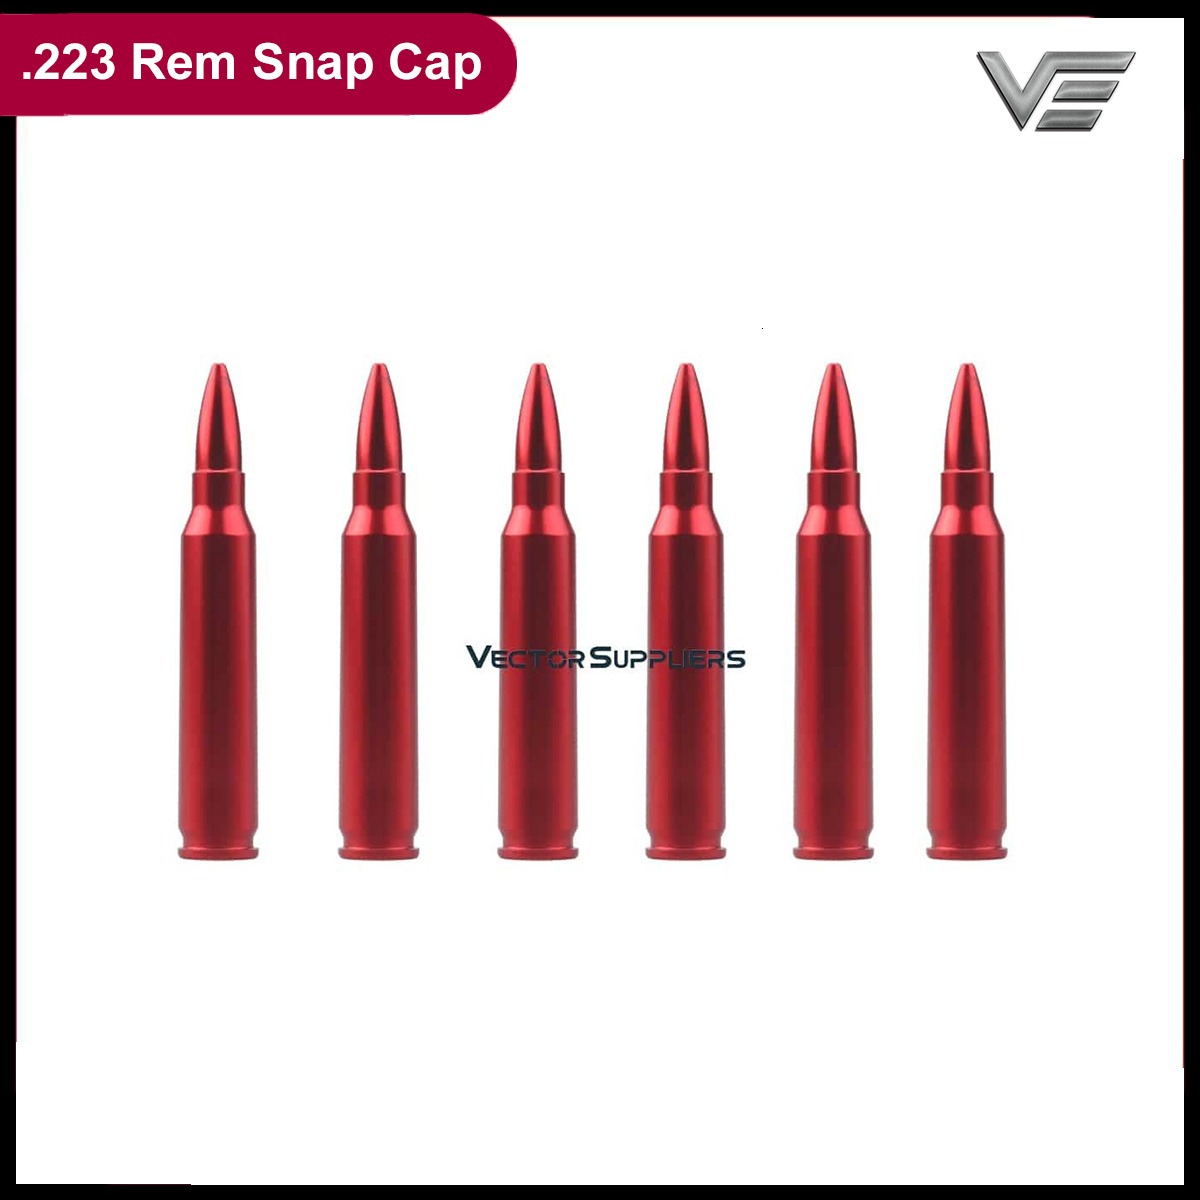 Vector Optics .223 Rem Precision Dry Fires Snap Caps For Safety Training Patrice Dummy Rounds Aluminum (6 Pack) W/ Sling